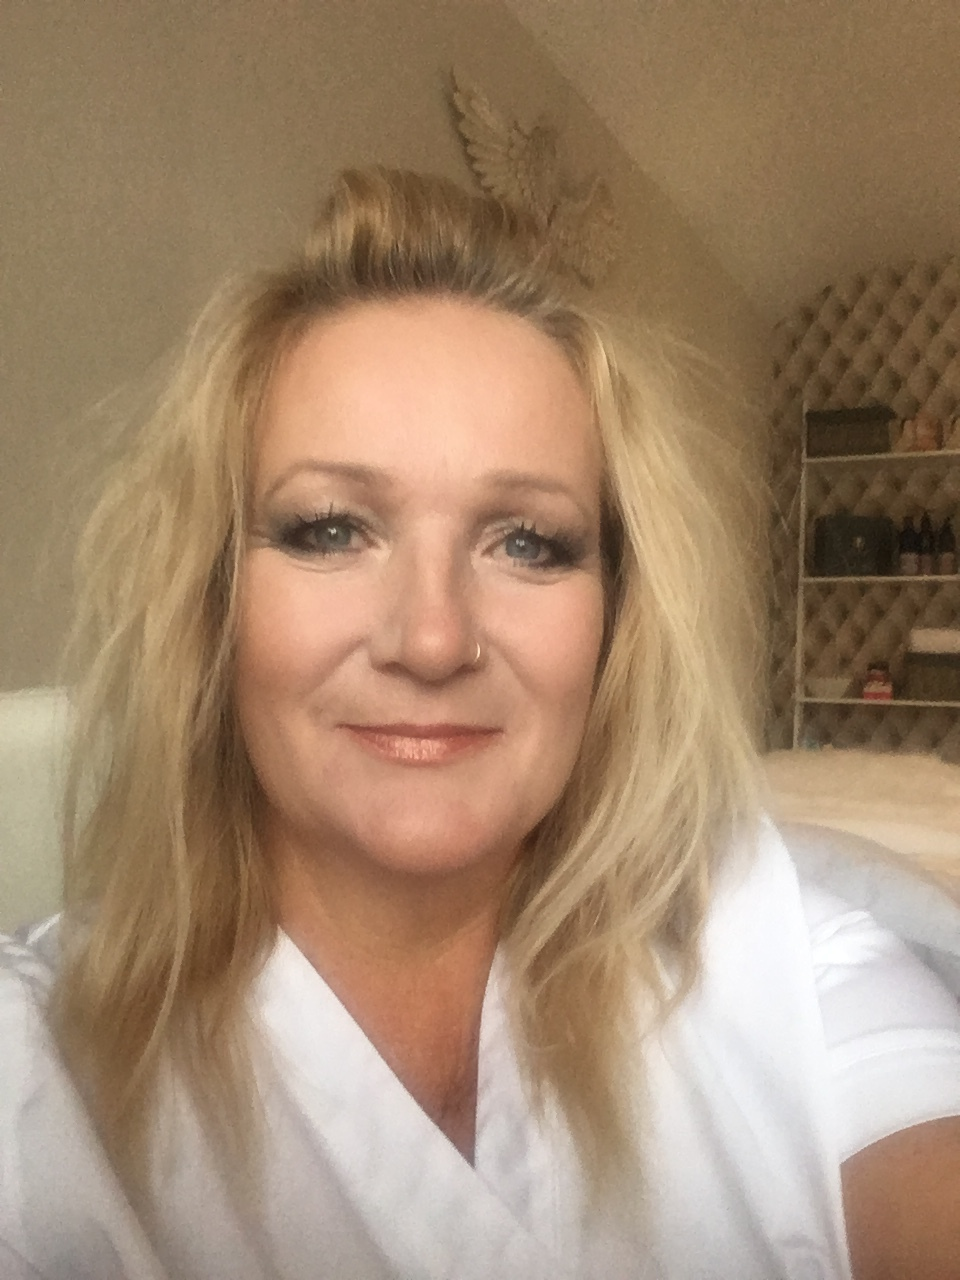 Denise Kirby, founder and therapist. Swedish Massage Dip. SNHS Dips. (CBT, Psychotherapy, Counselling, Life Coaching, Nutrition, Reflexology, Aromatherapy, Hot Stones, Indian Head Massage, Relaxation & Meditation) Child Safeguarding trained & DBS checked. -